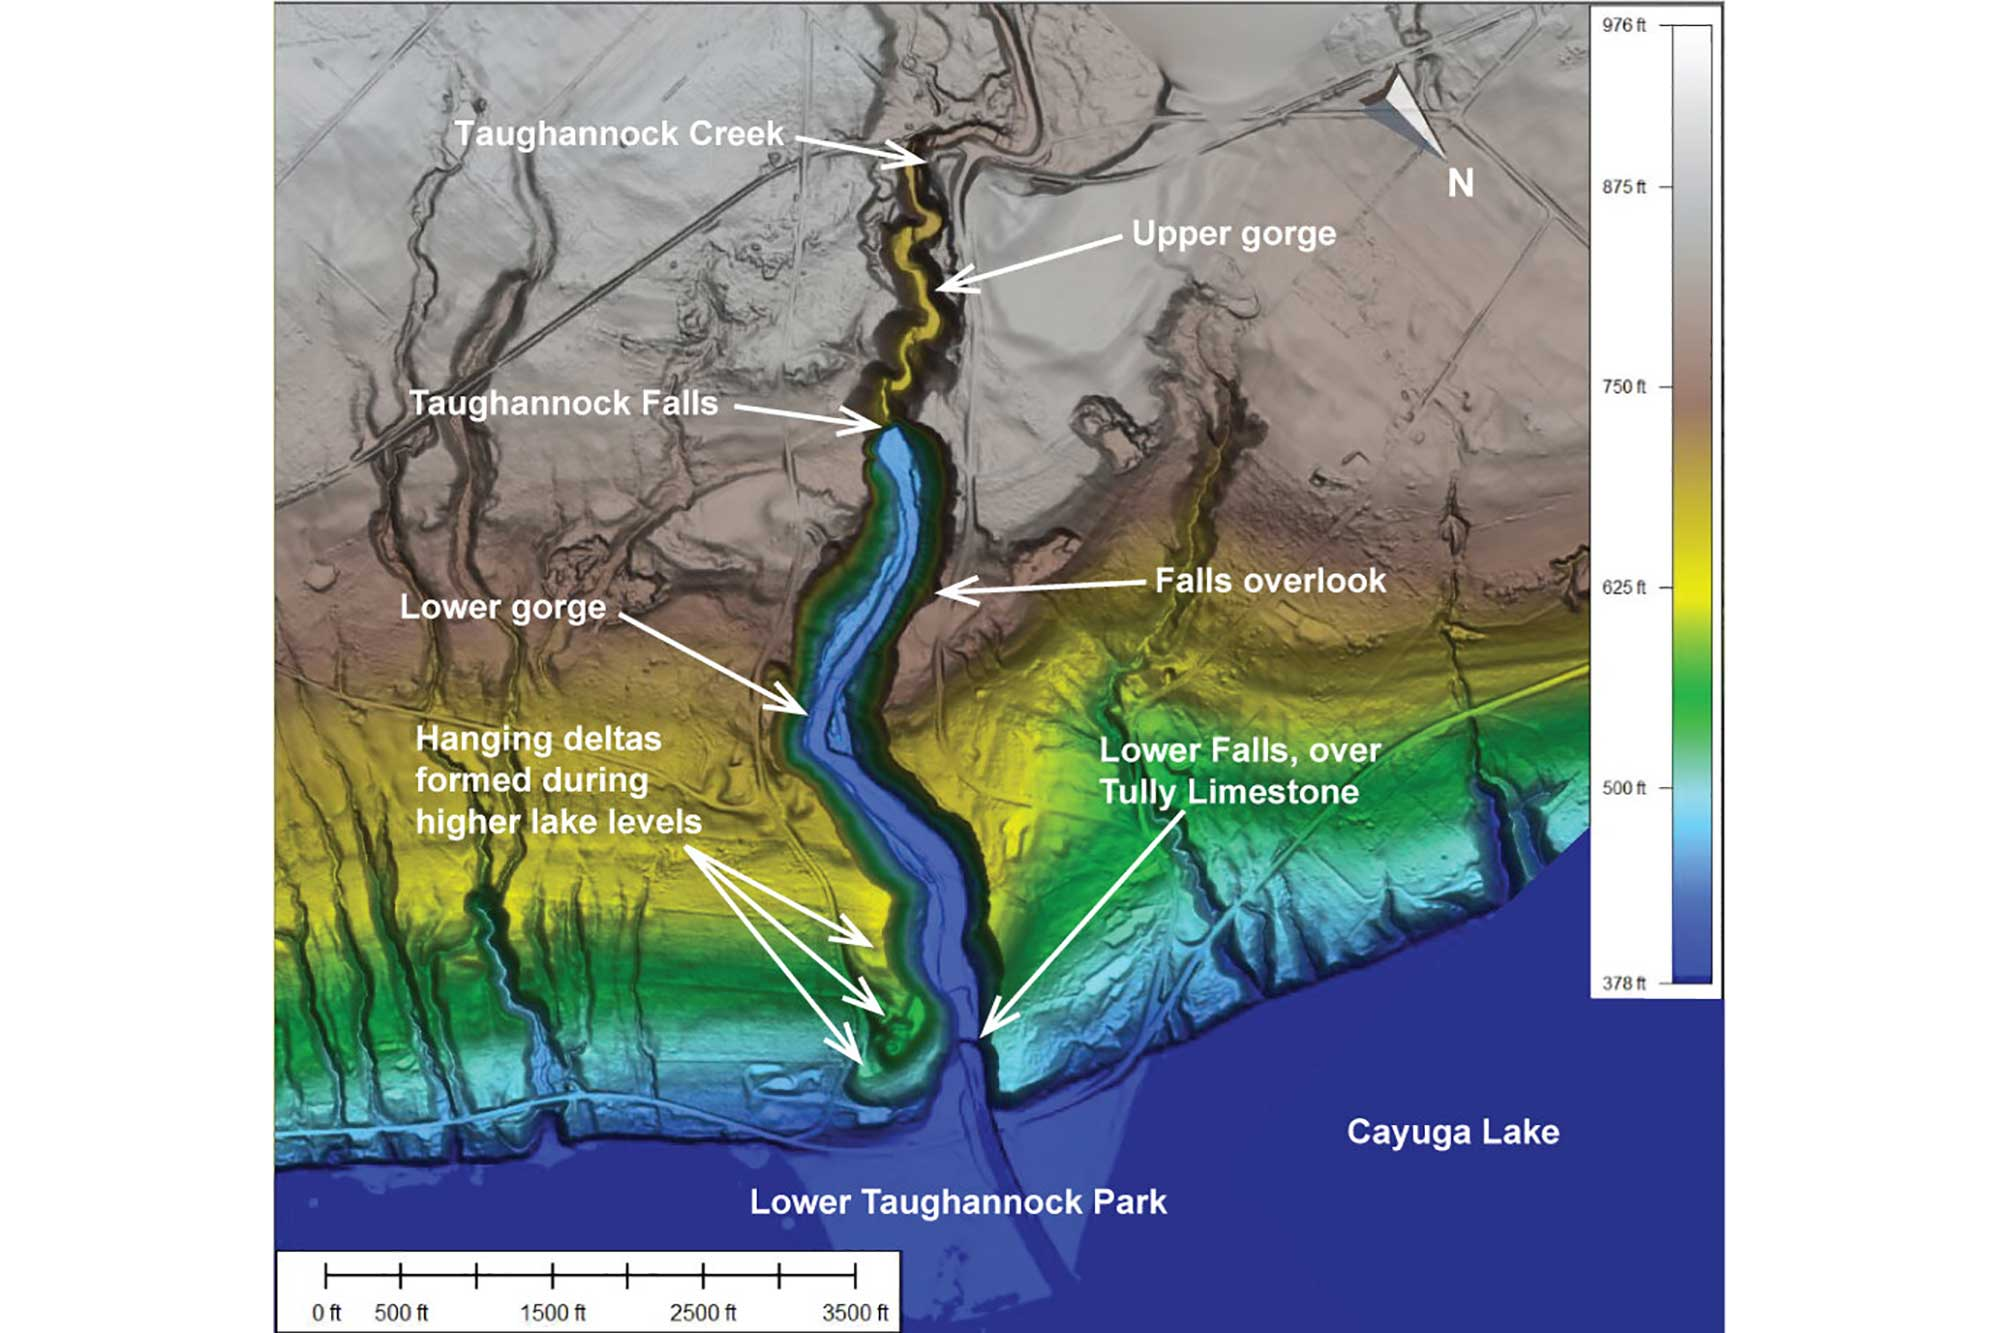 Map showing the topography and major features of Taughannock Falls State Park.